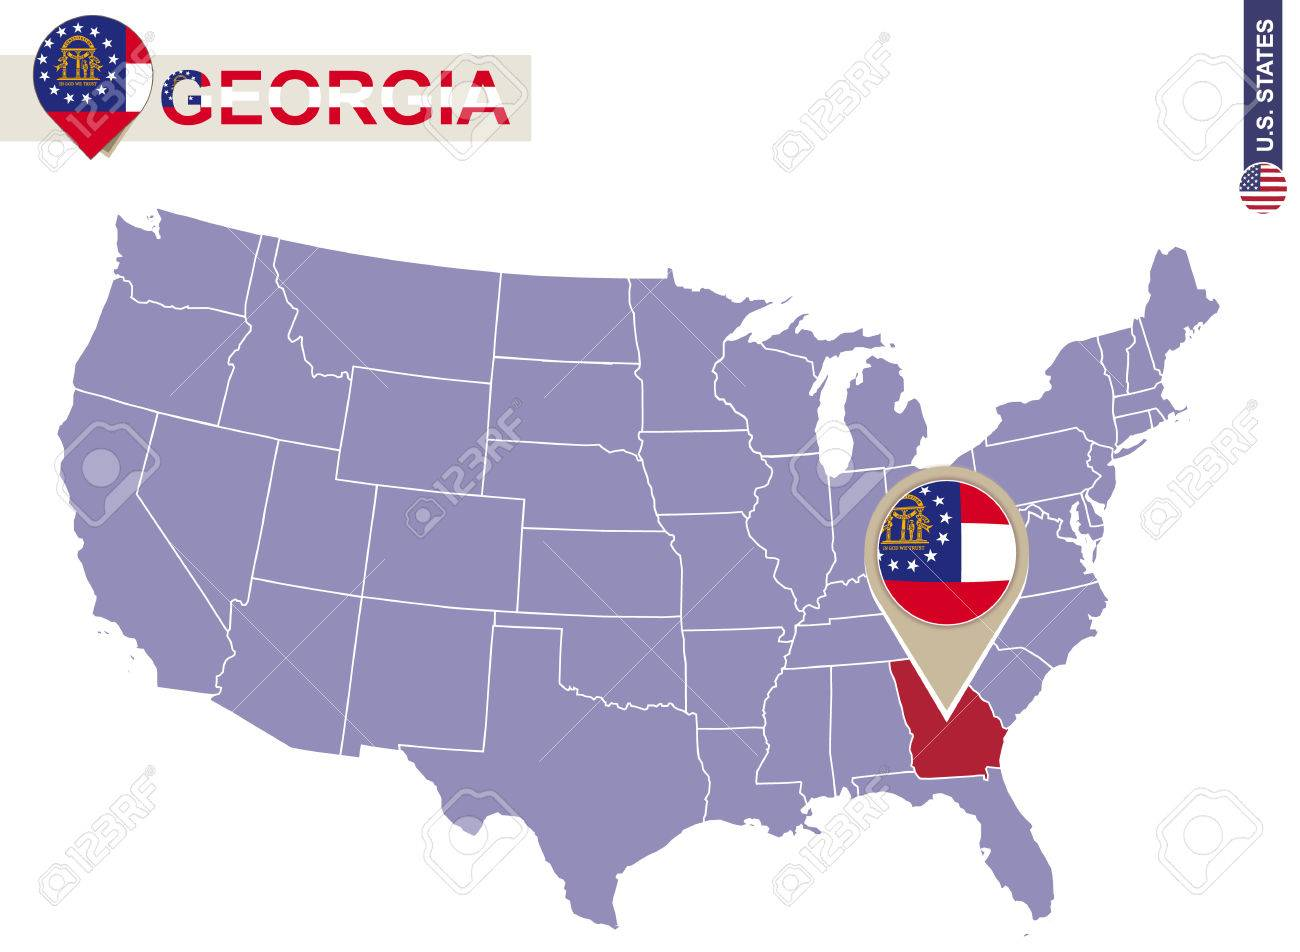 Georgia State On USA Map. Georgia Flag And Map. US States. Royalty ...